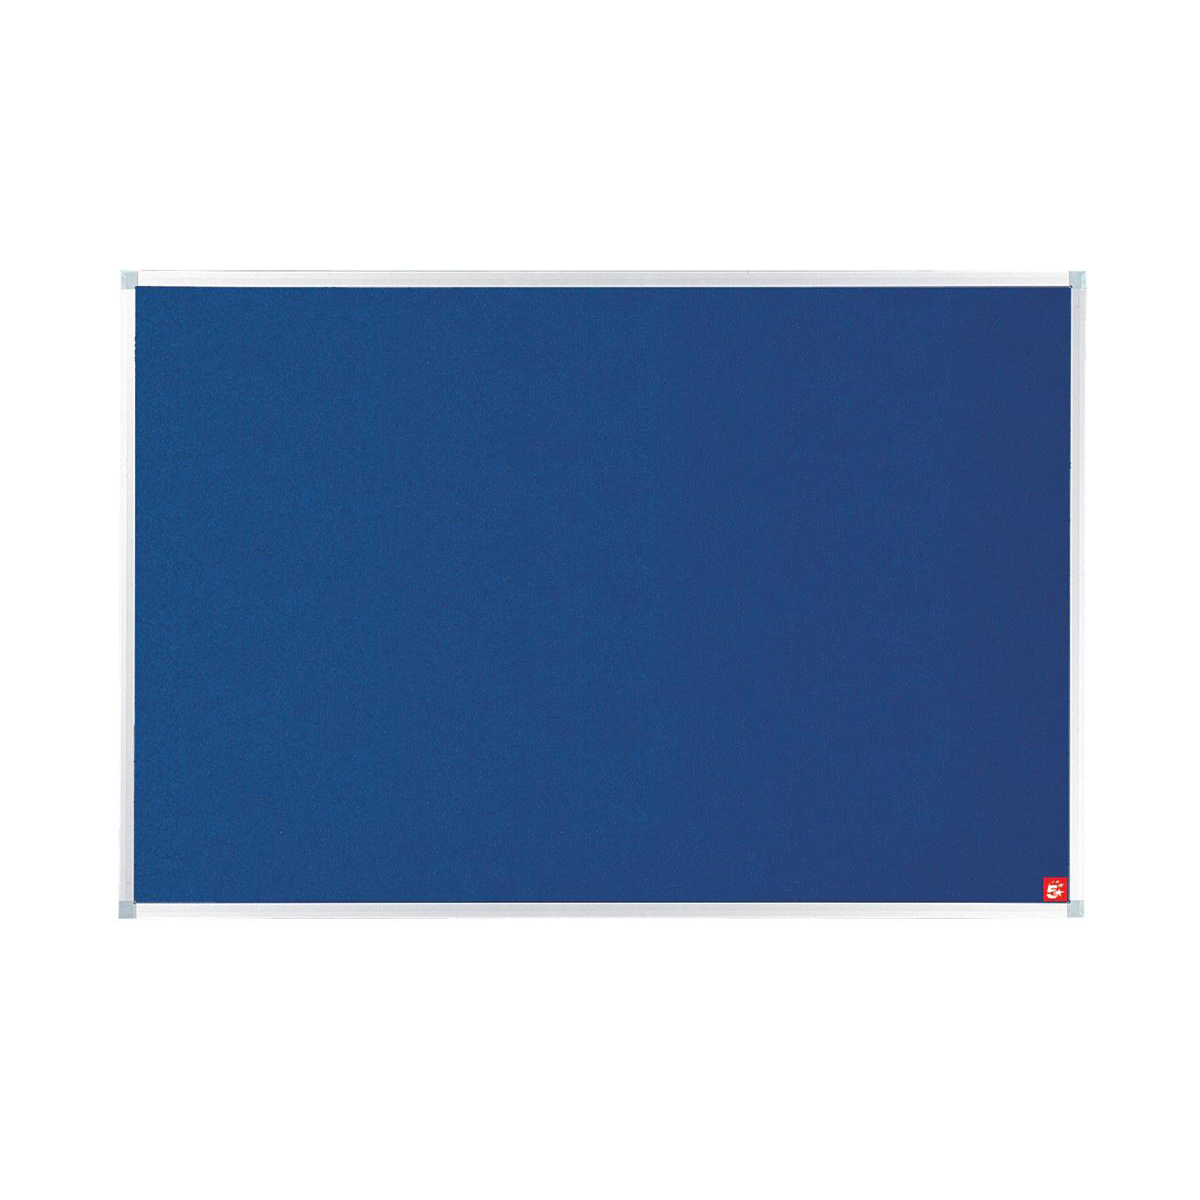 5 Star Office Felt Noticeboard with Fixings and Aluminium Trim W1200x900mm Blue